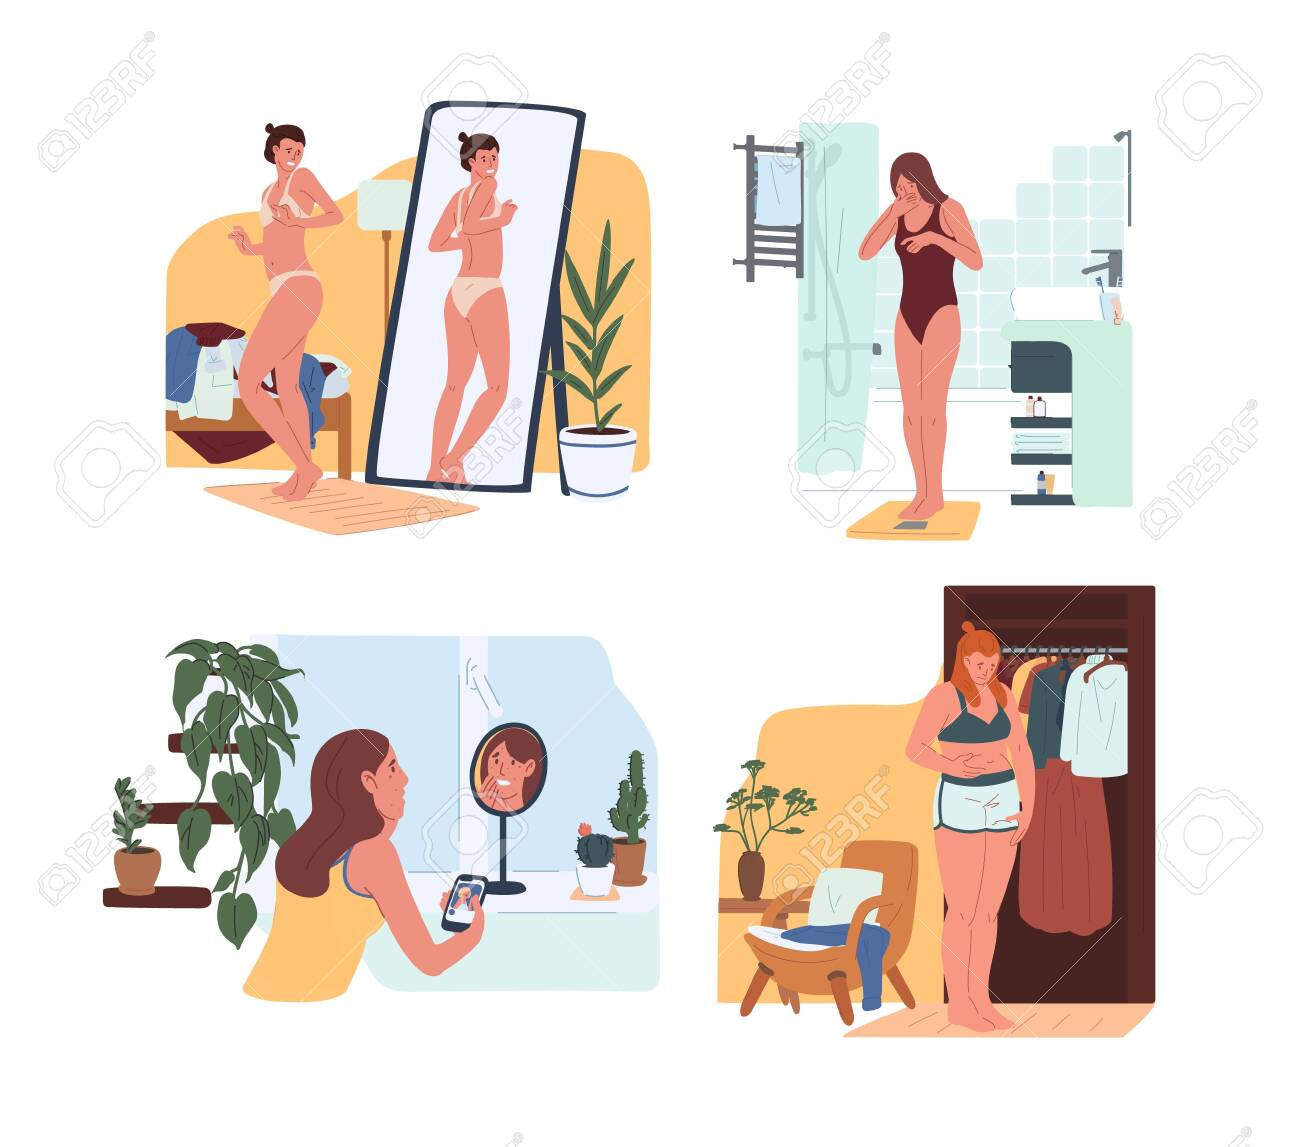 Young funny women in underwear looking in mirror and weighing on scales. Body rejection problem, dysmorphophobia, self hate, dissatisfaction with appearance. Flat cartoon colorful vector illustration - 128183492